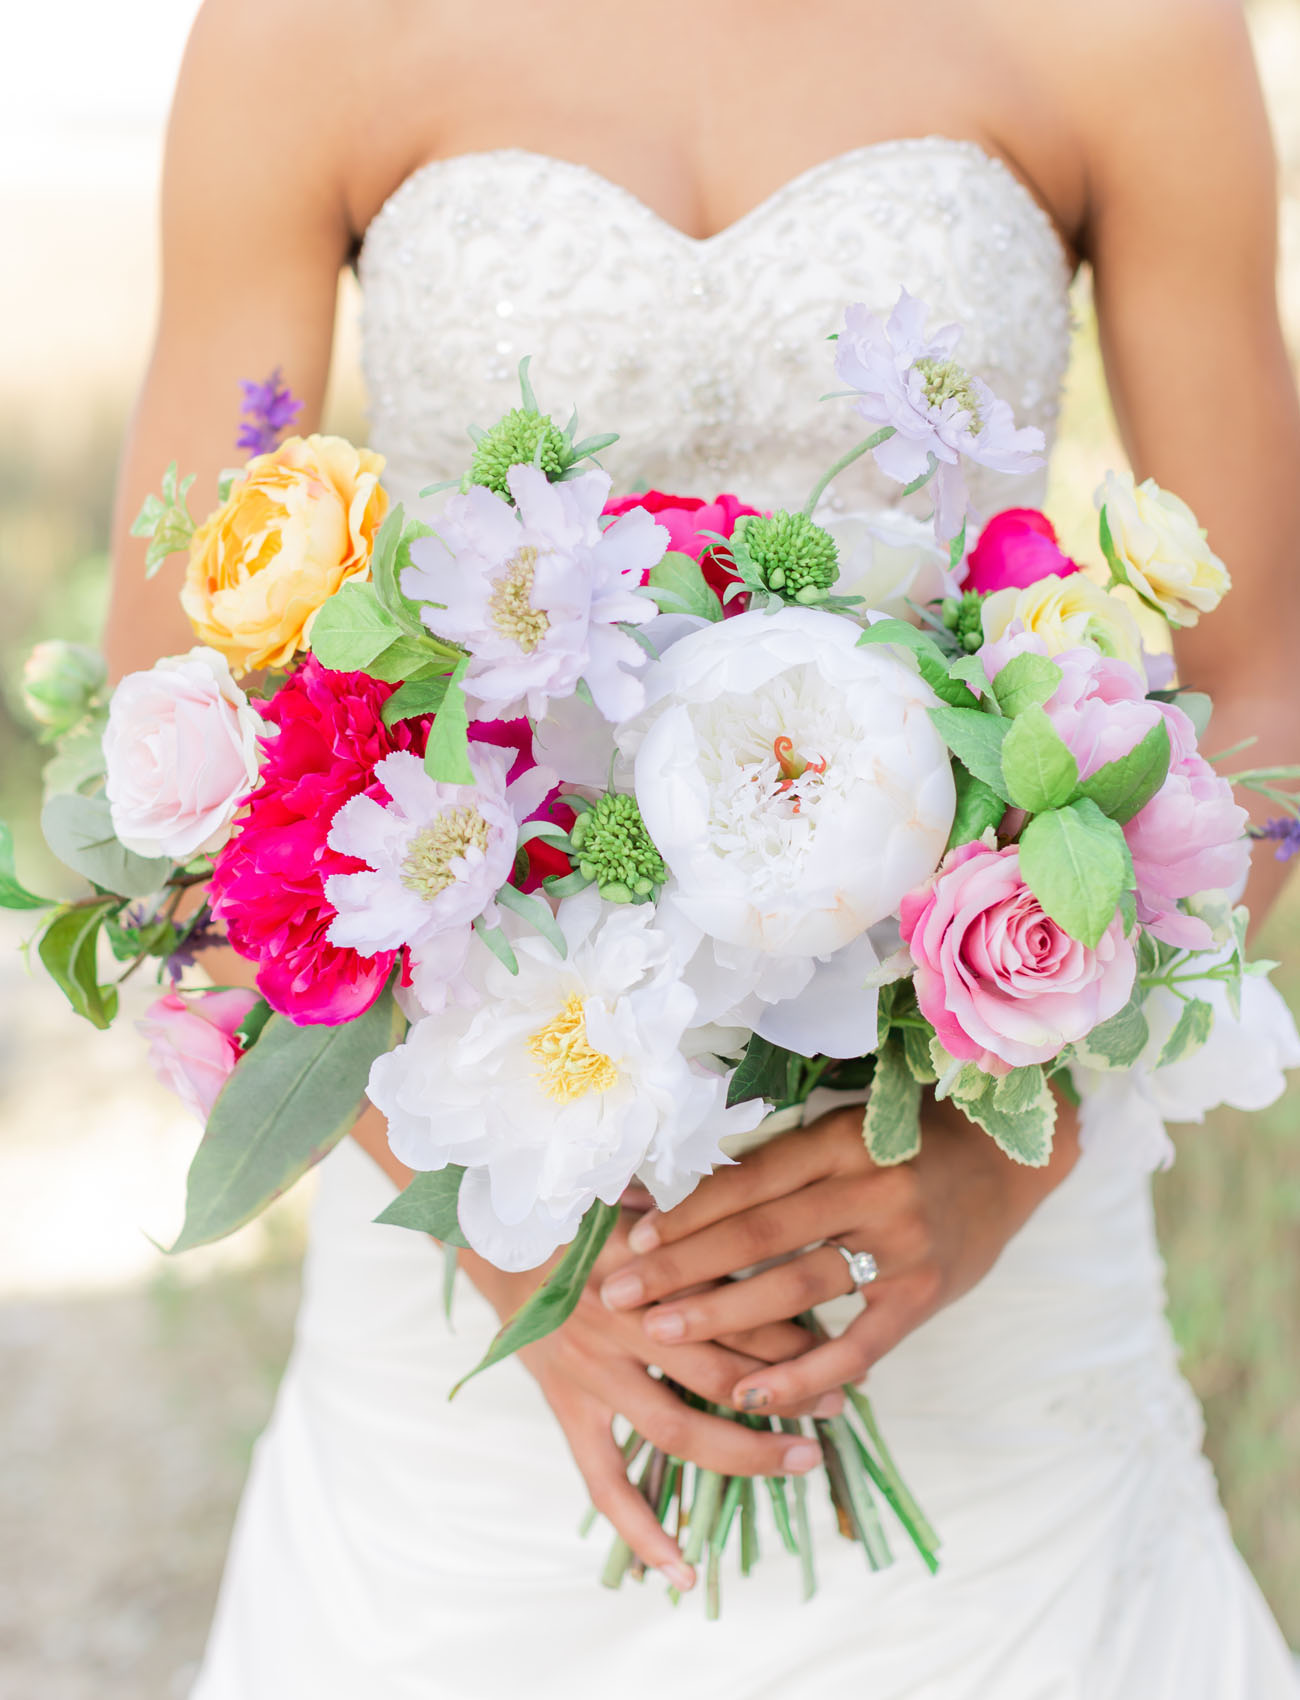 "The Simplest Way to Keep Your Wedding Florals Affordable"" Rent Them (Yes, We?re Serious!)"